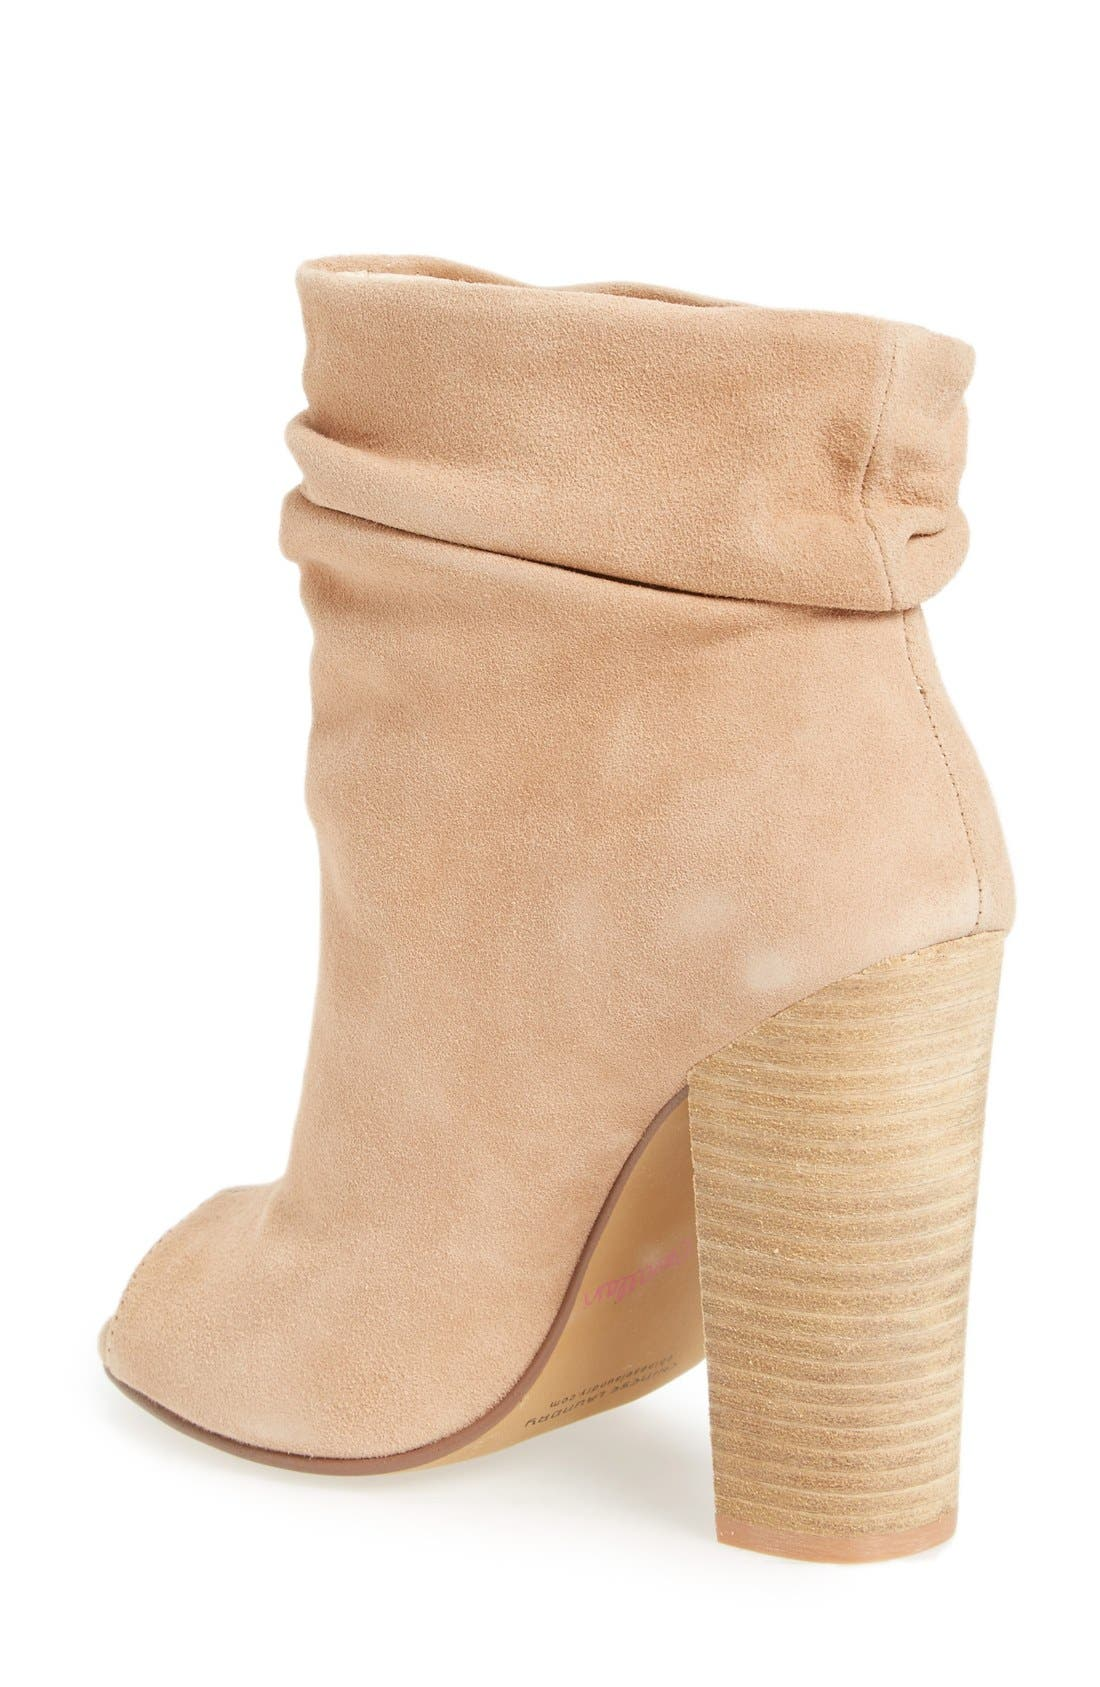 'Laurel' Peep Toe Bootie,                             Alternate thumbnail 13, color,